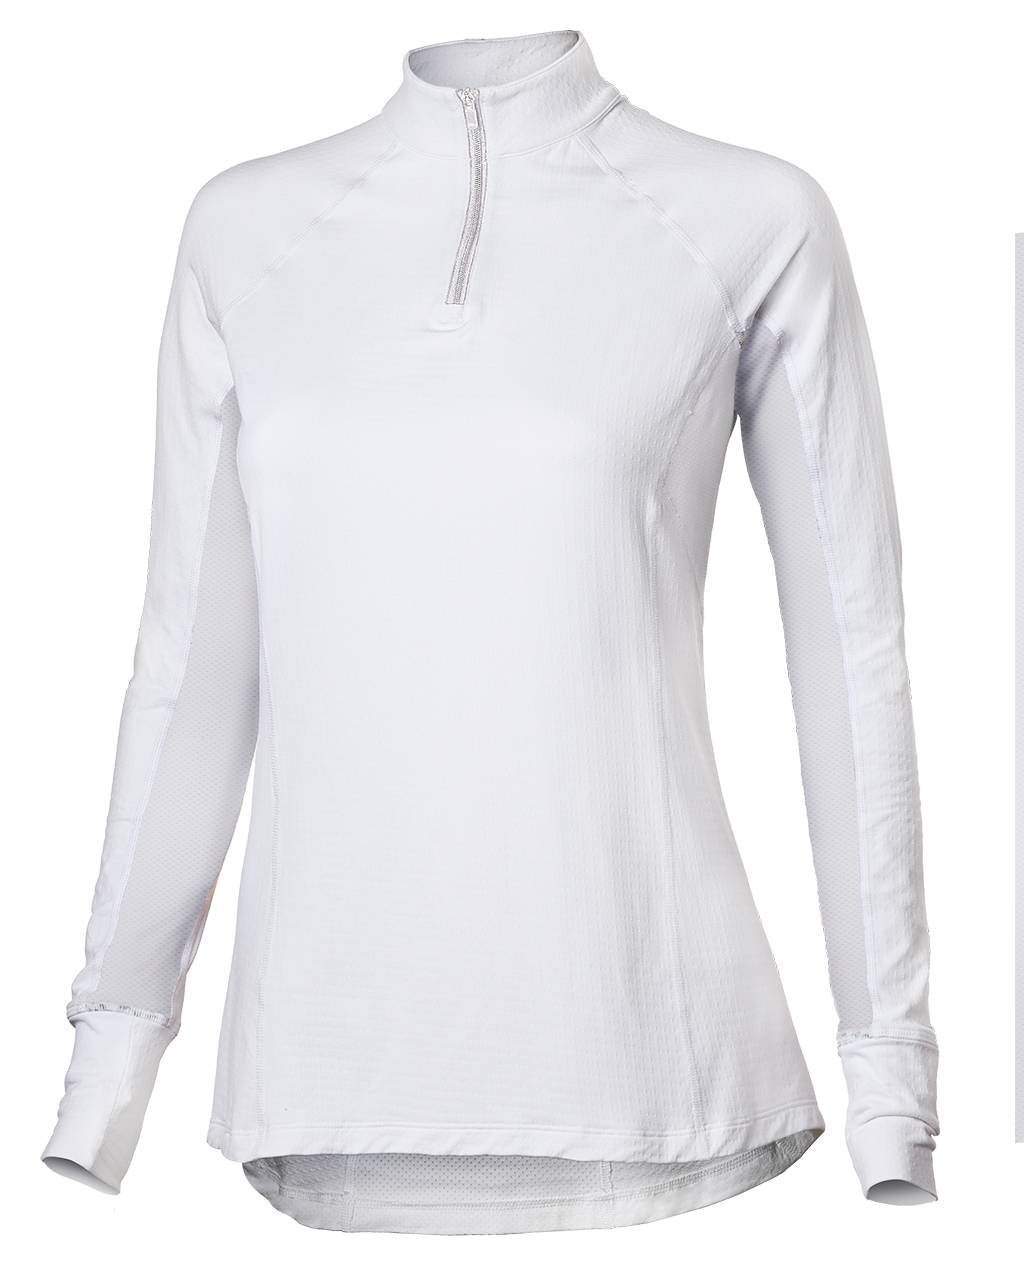 Outlet - Noble Outfitters Ashley Performance Shirt - Ladies, X-Large, White